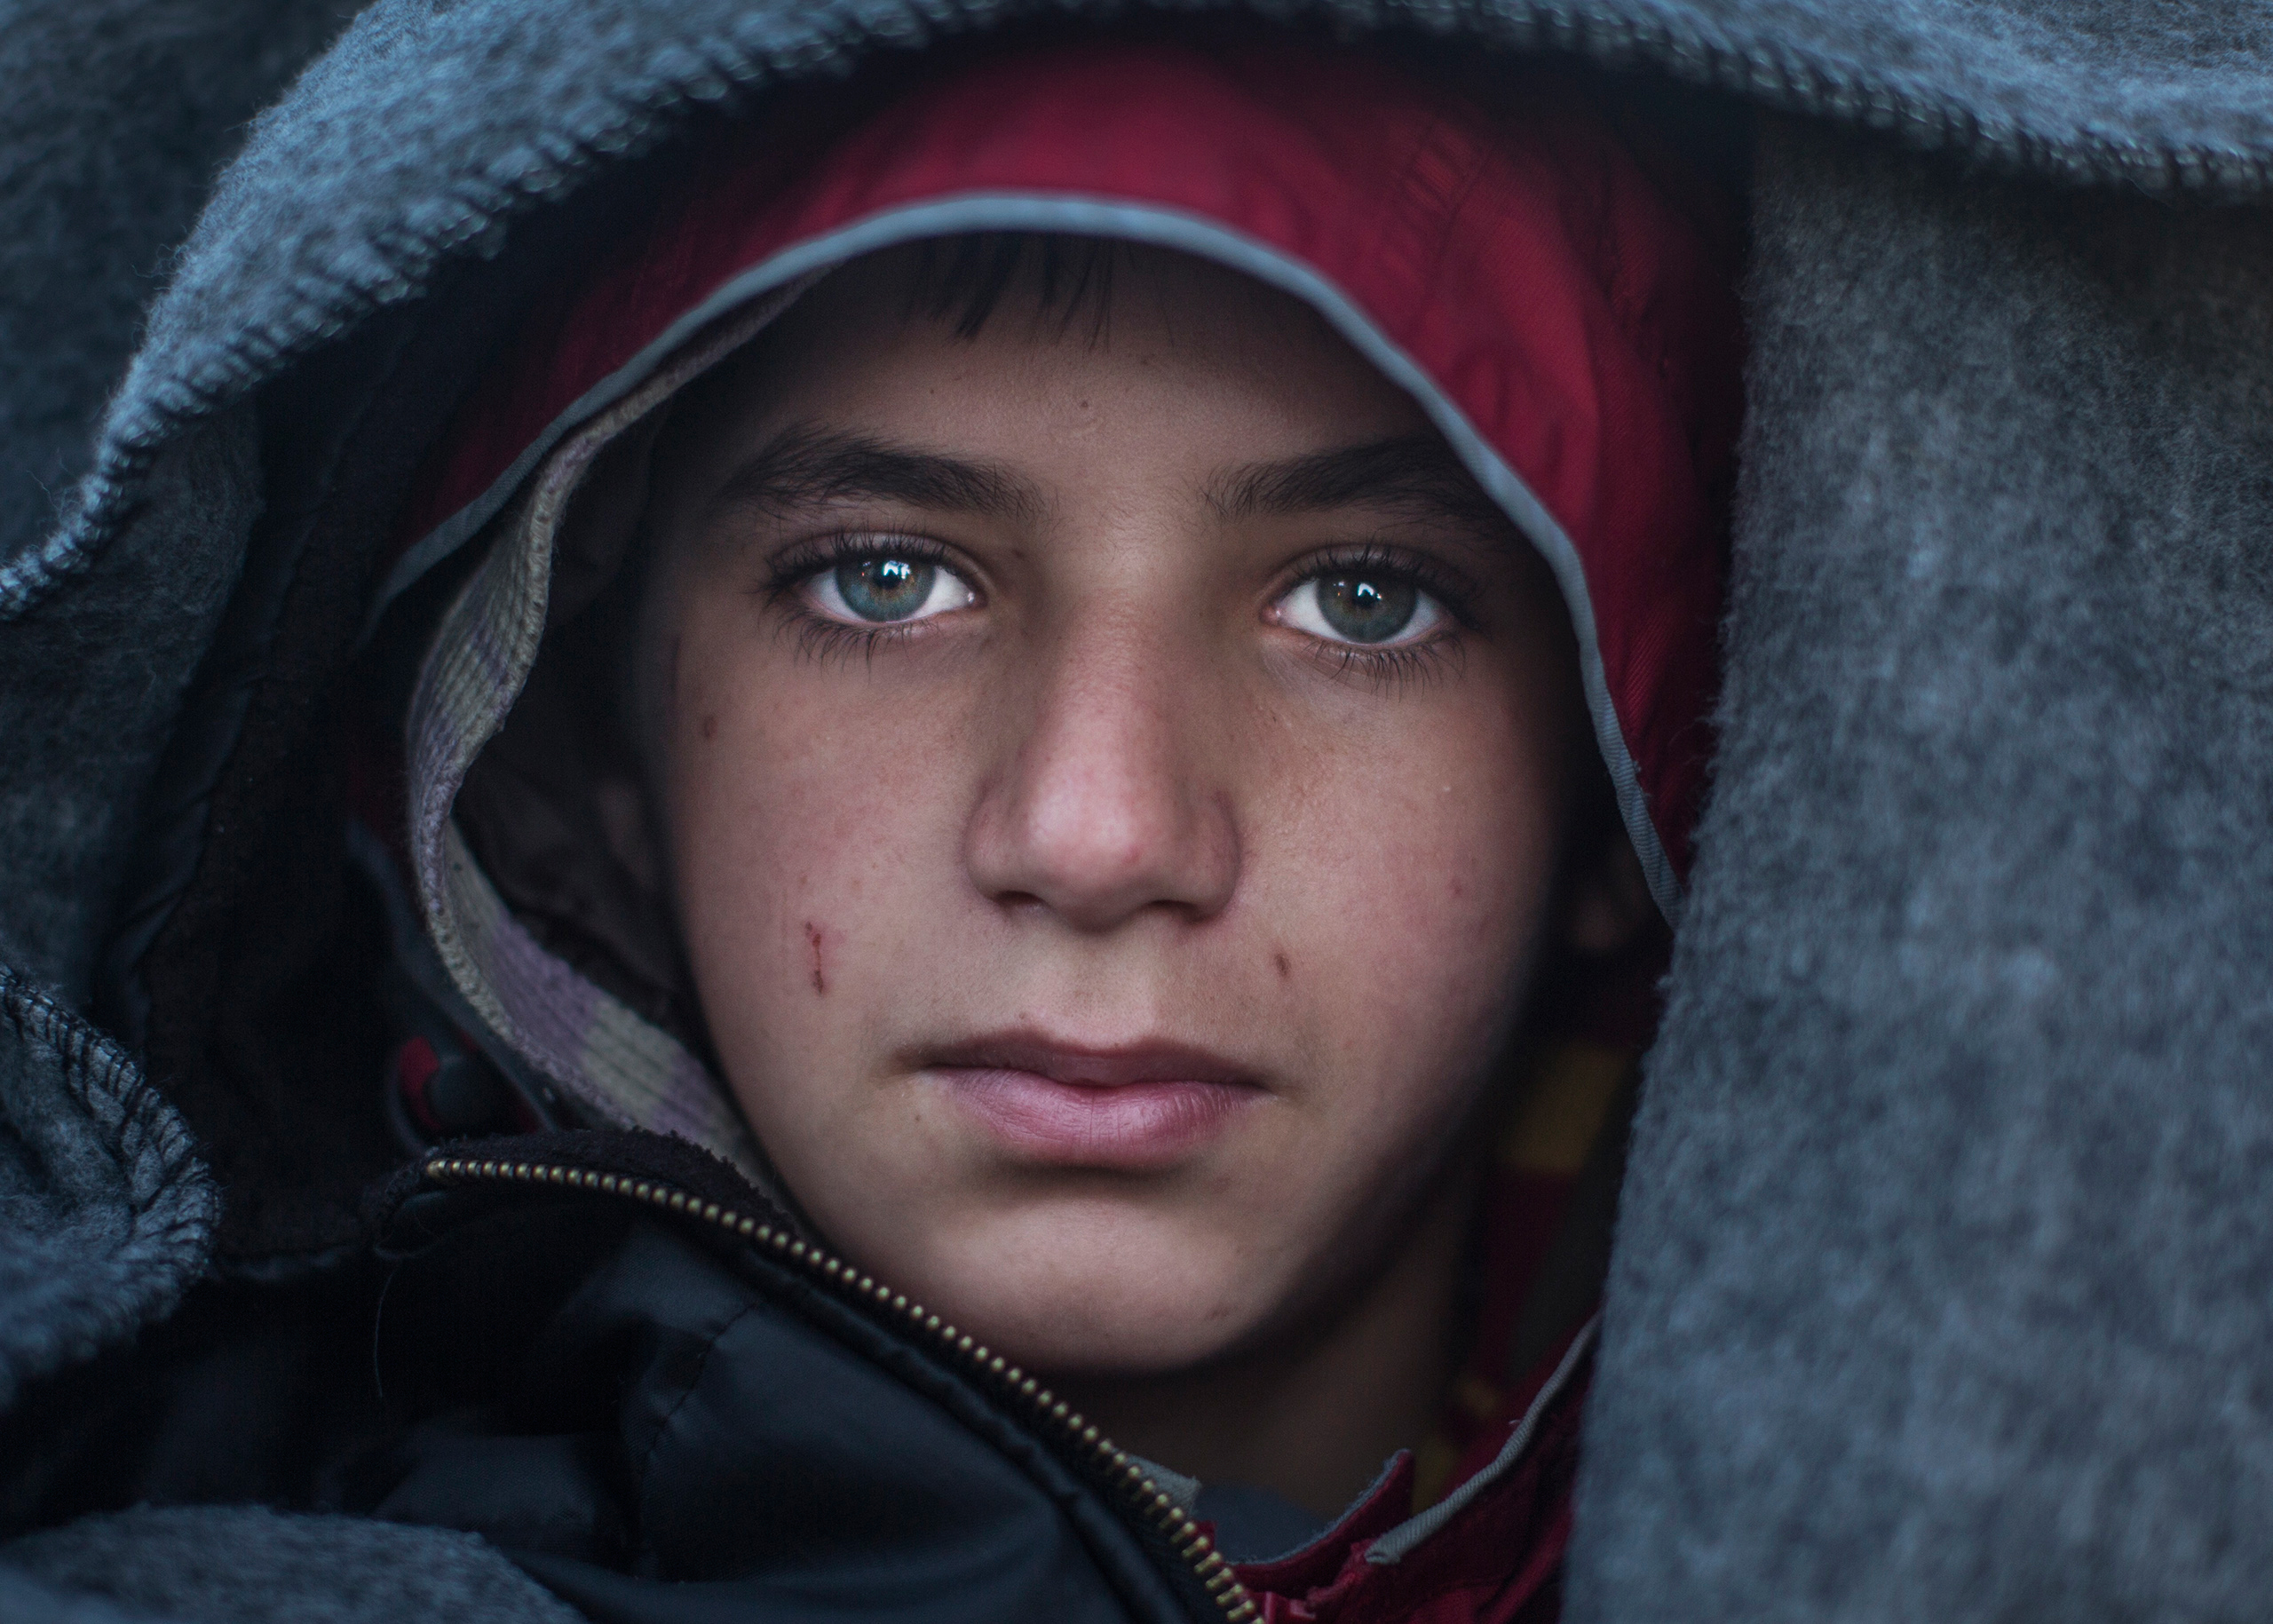 An 11-year-old Syrian refugee named Ahmed waits in line for a map directing asylum-seekers north at an encampment near the Greek village of Idomeni, March 4, 2016.